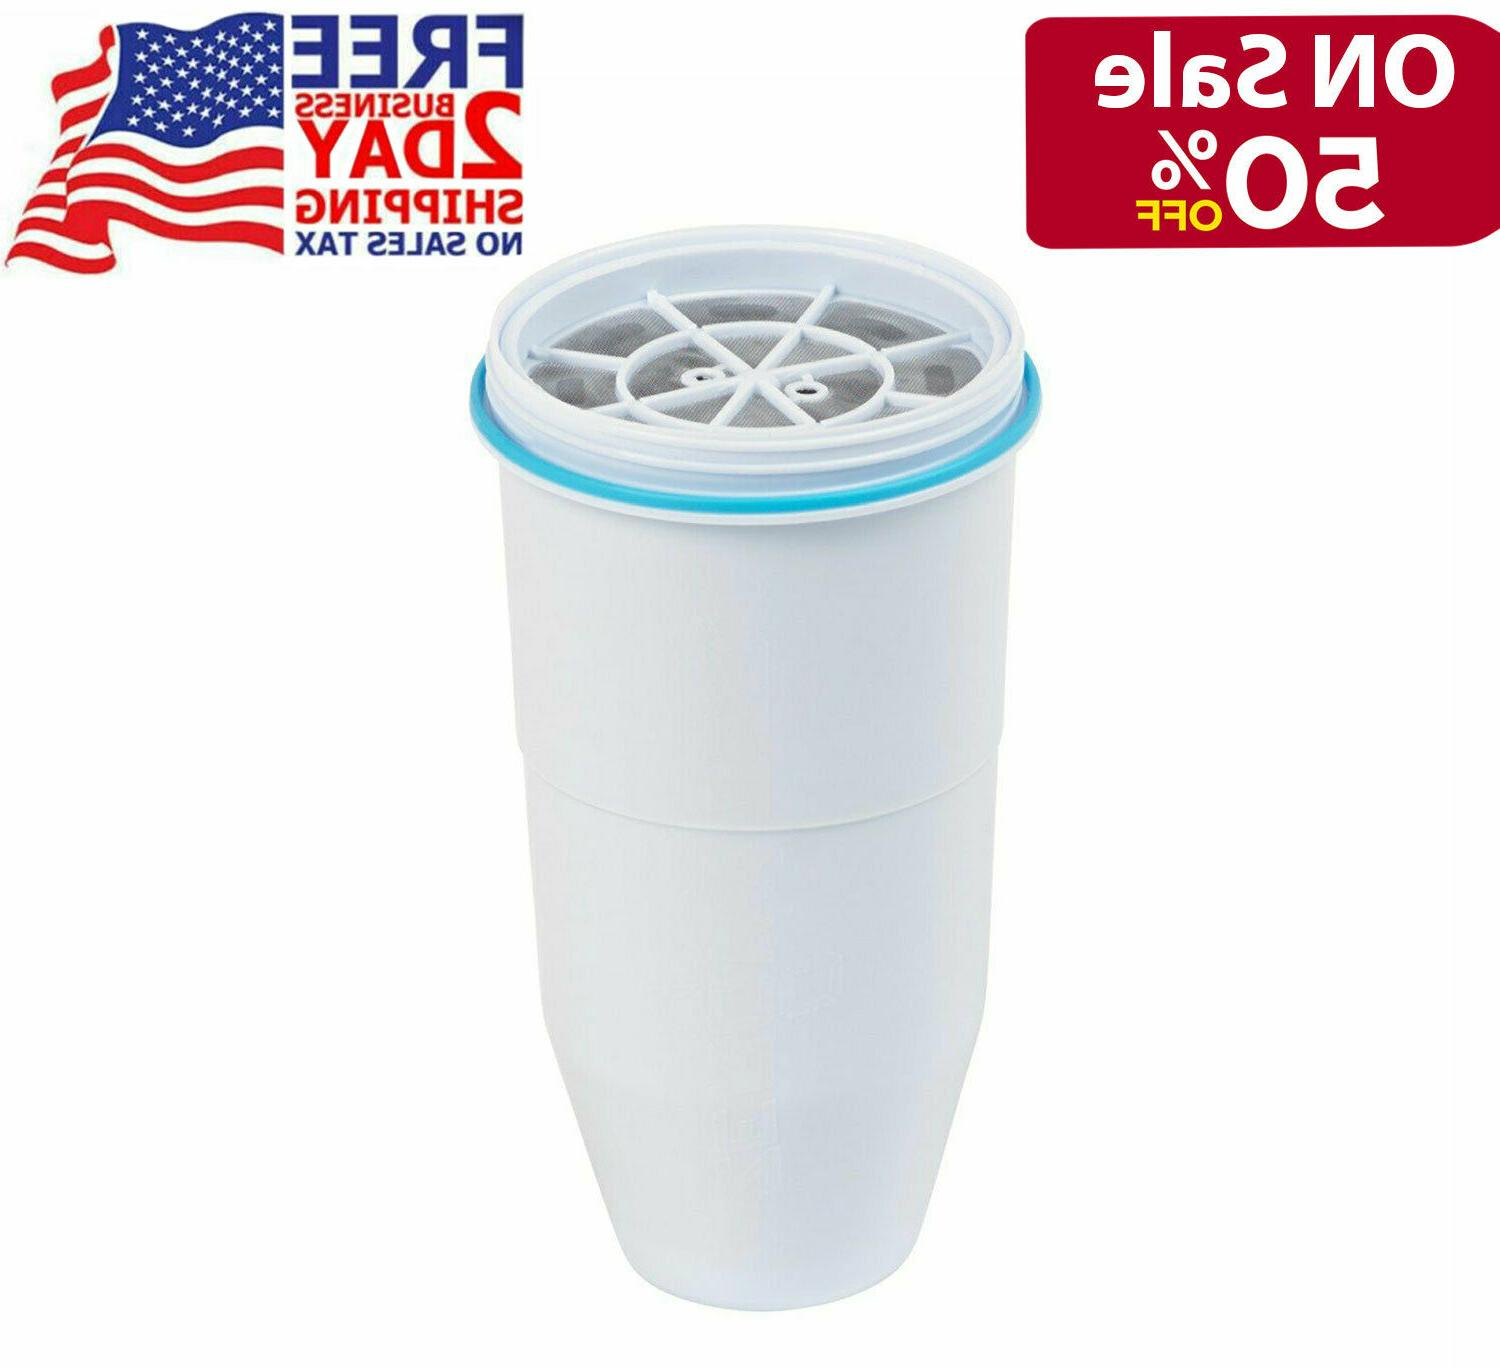 replacement filter for all zero water dispensers